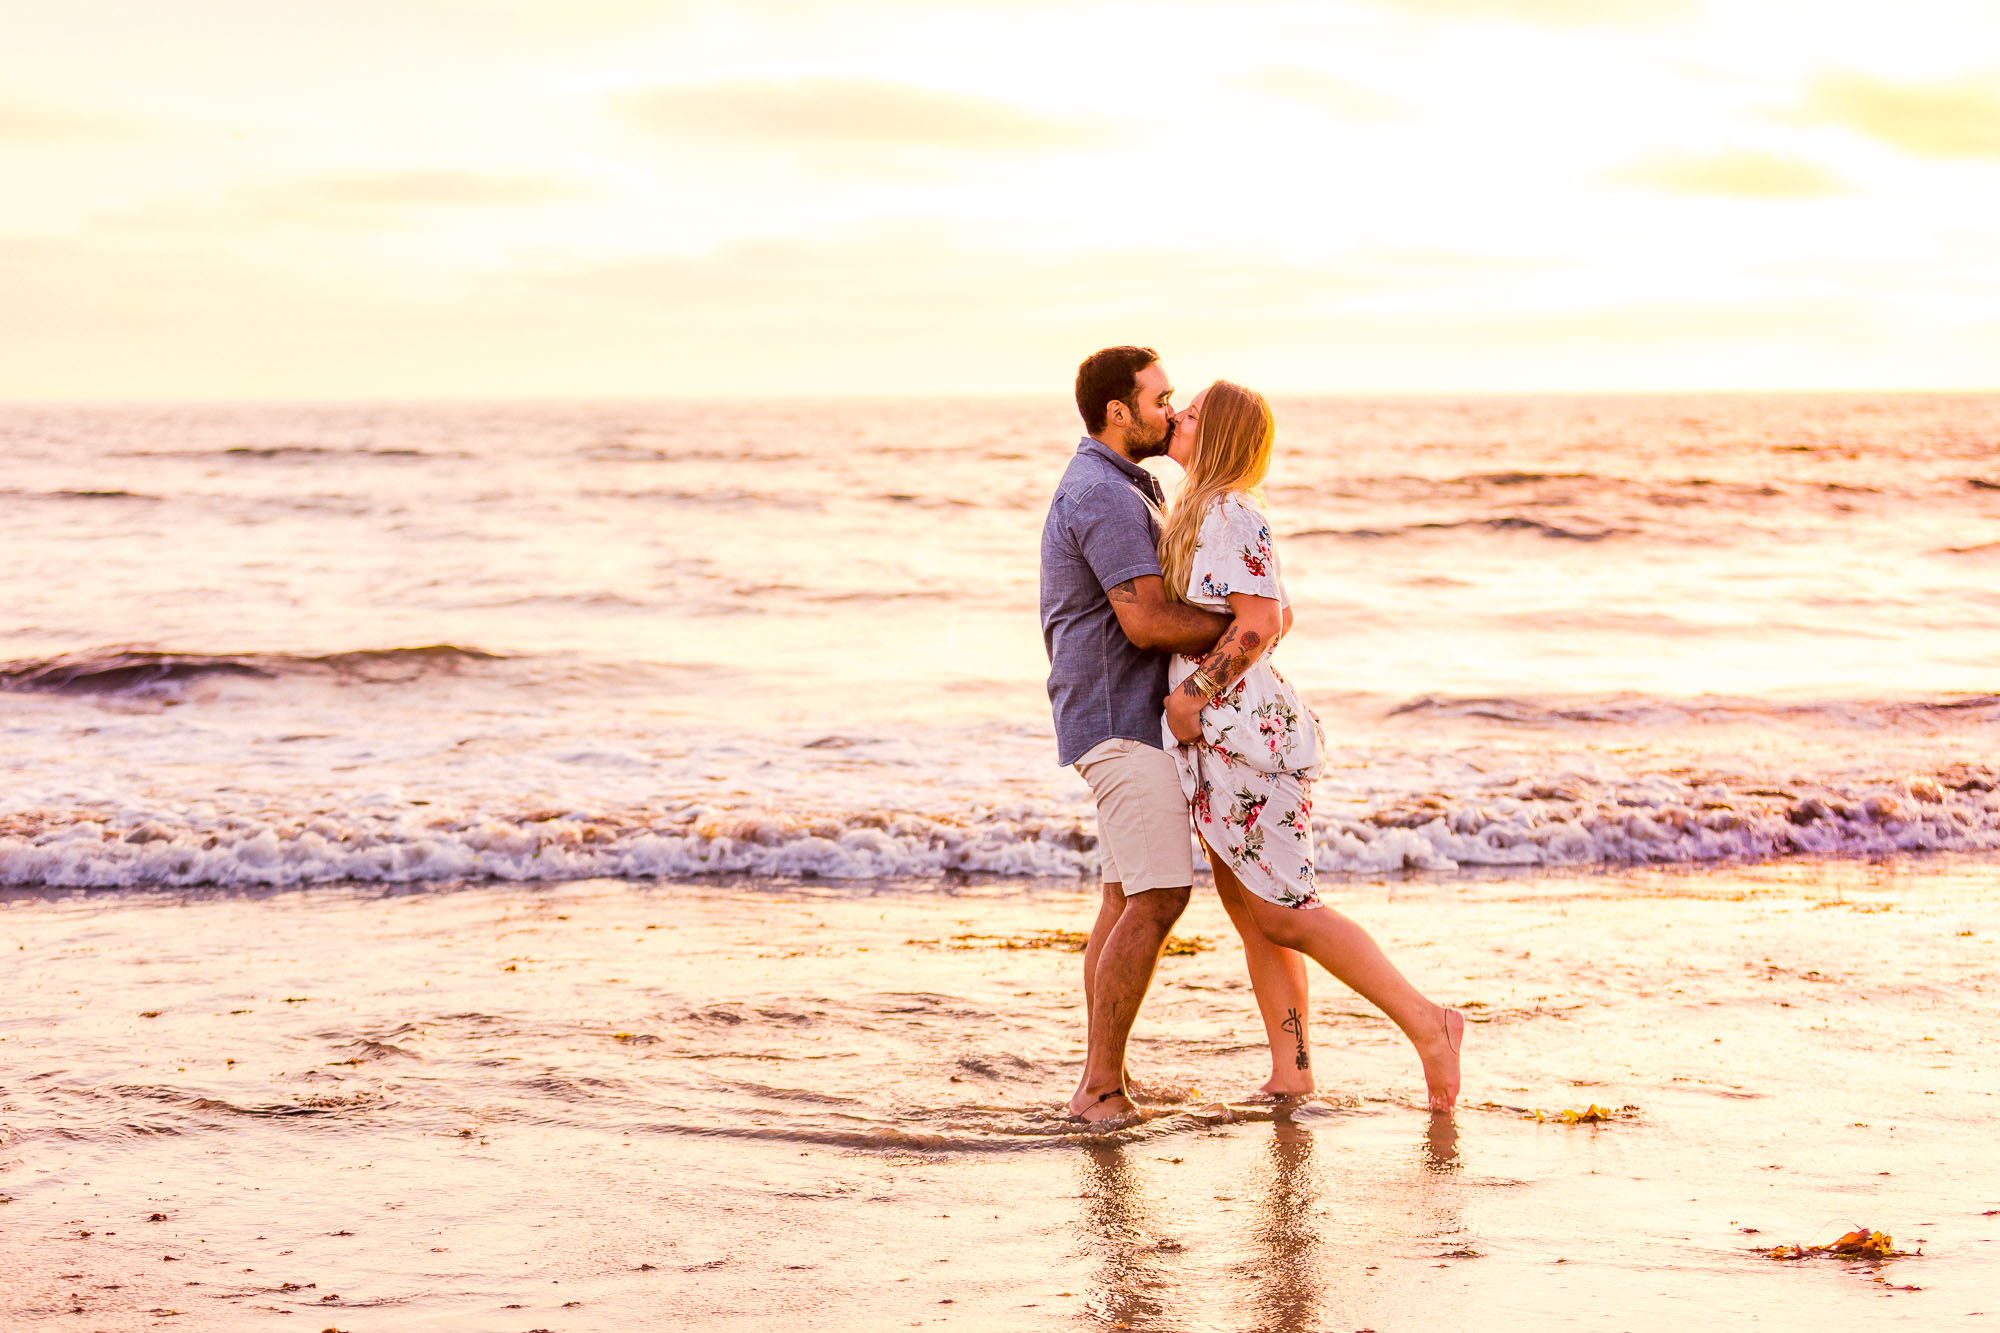 Justine_Puneet_Cardiff_Engagement_Session_232.jpg